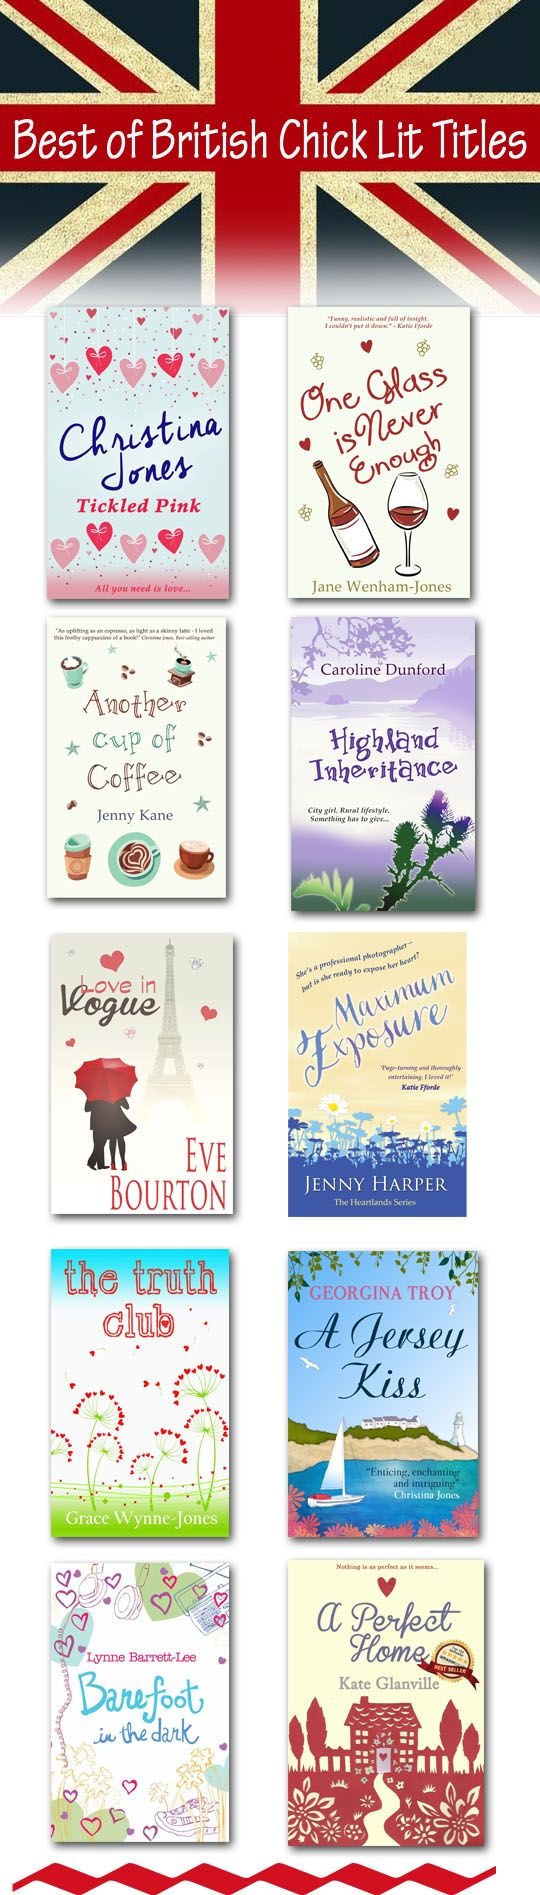 Love reading Chick lit books? Then you'll love these titles by great British authors.